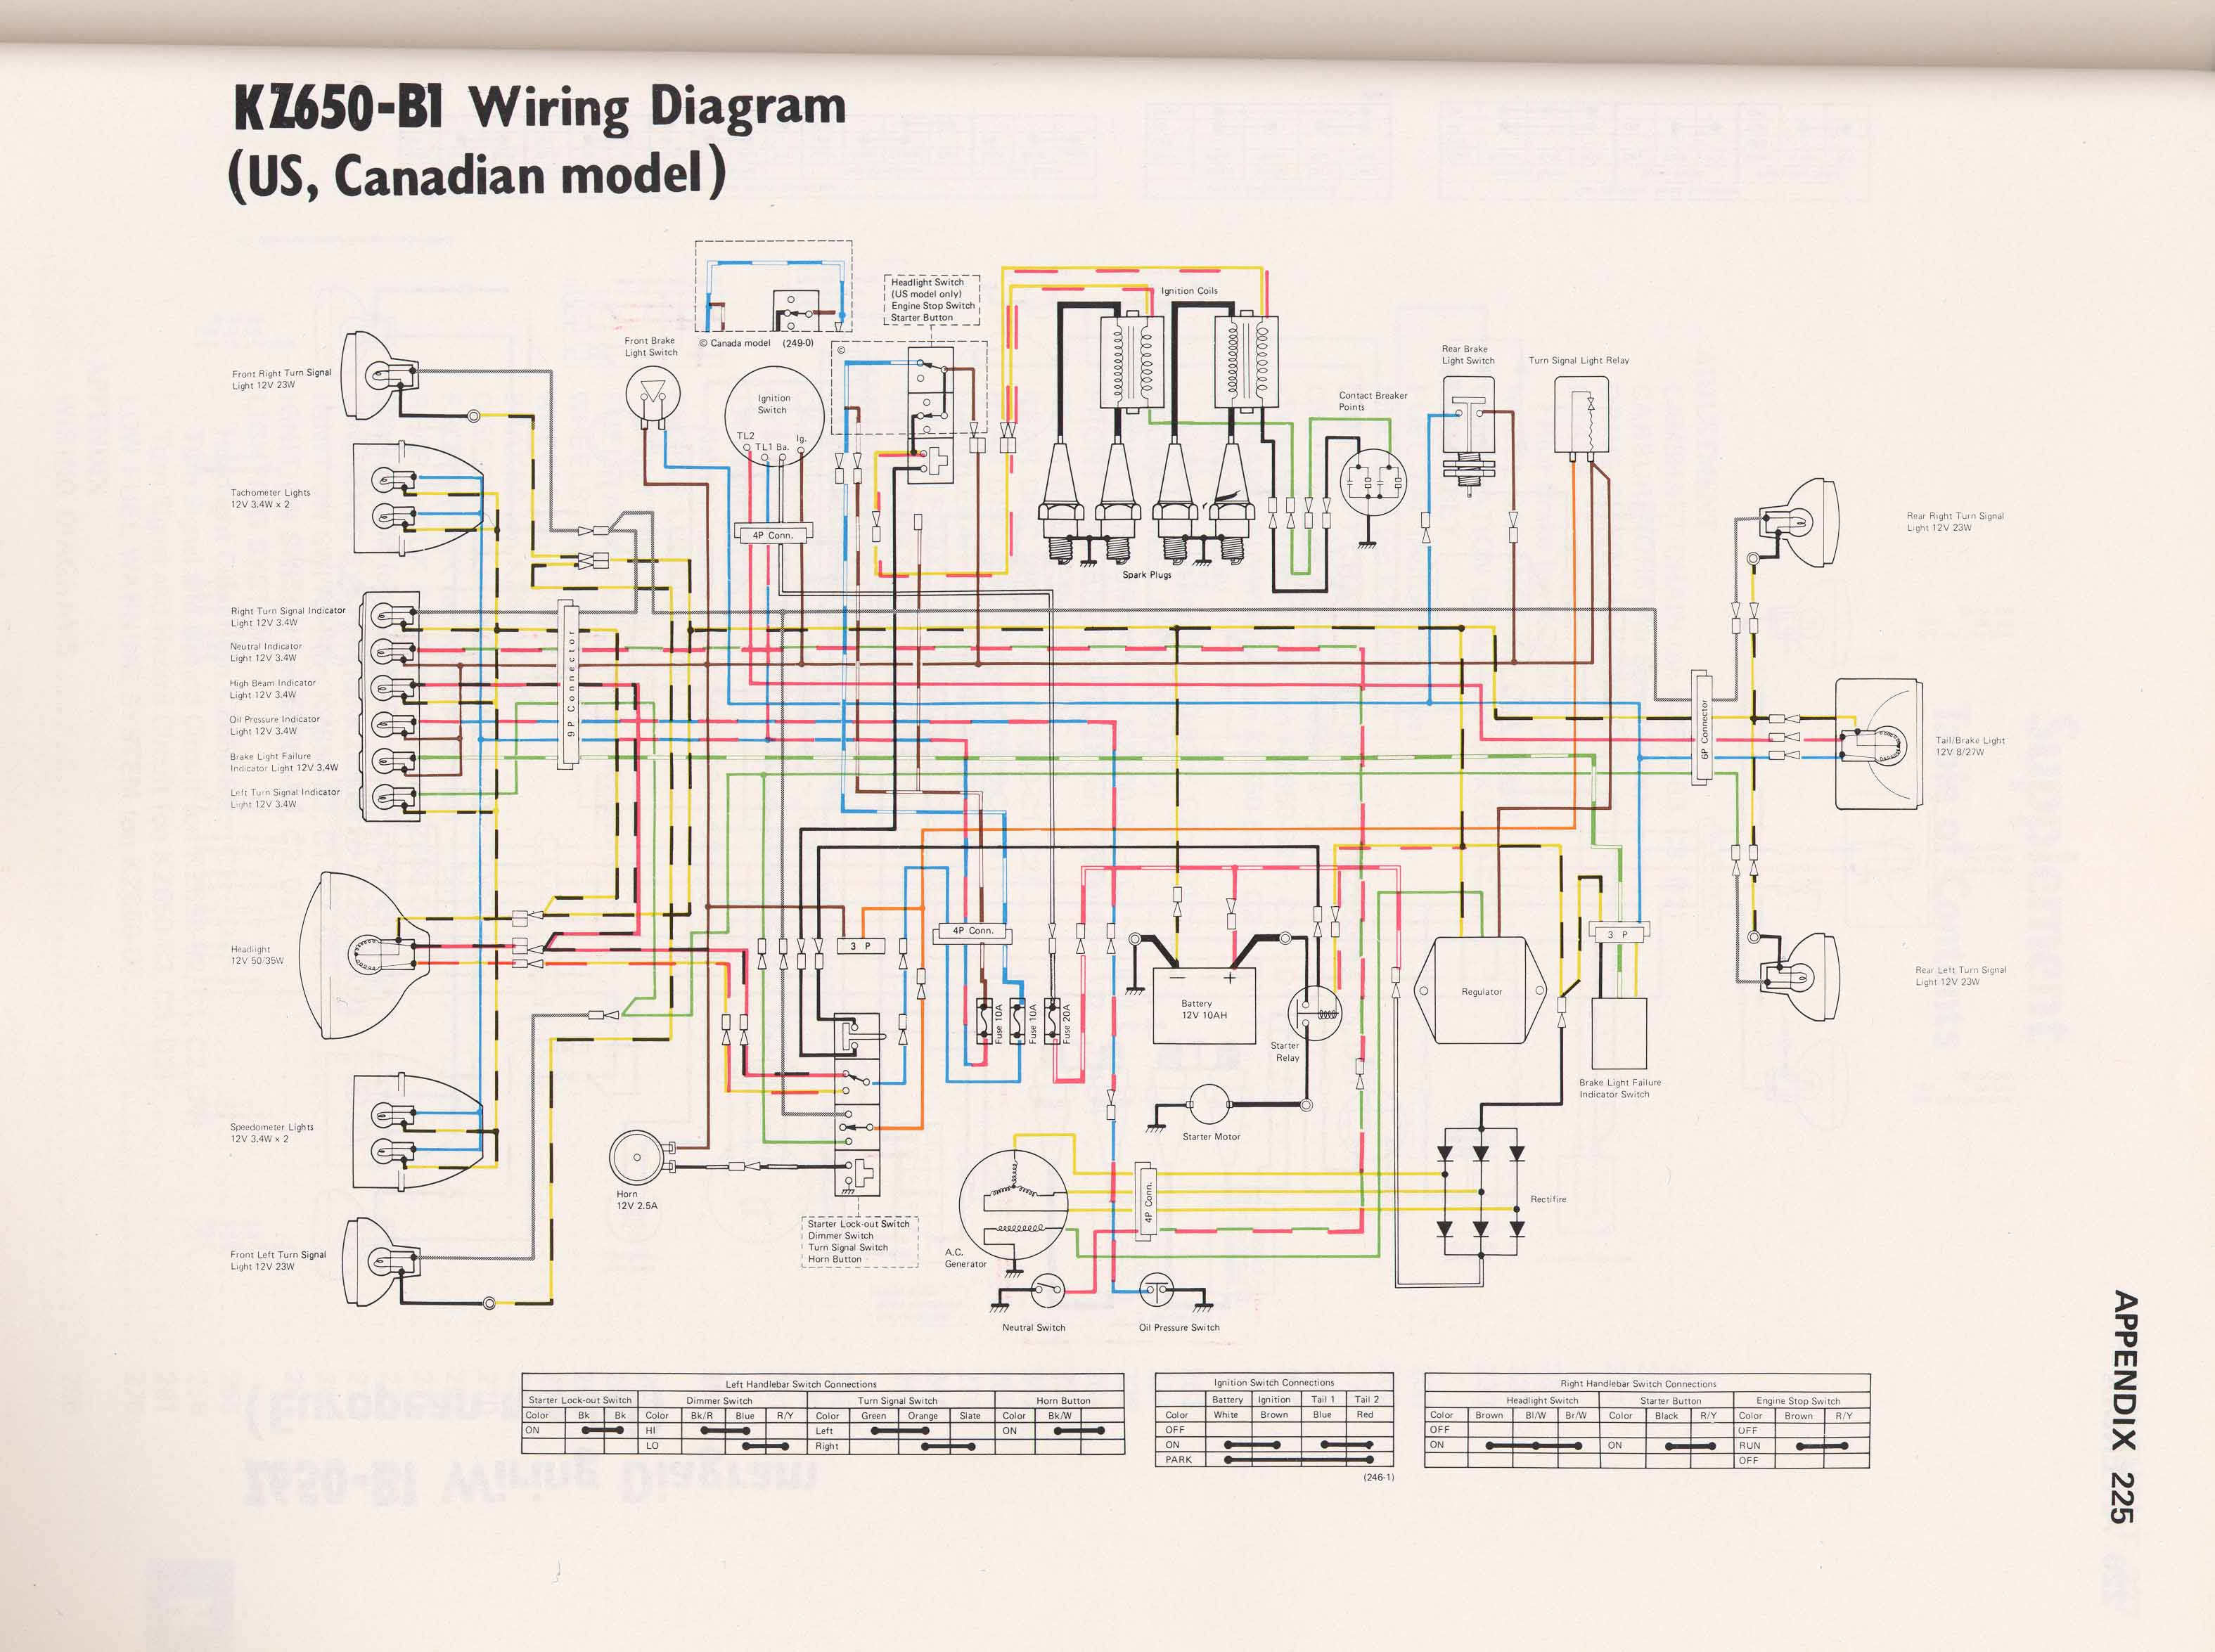 77 kz650 wiring diagram kz650.info - wiring diagrams 80 kz650 wiring diagram